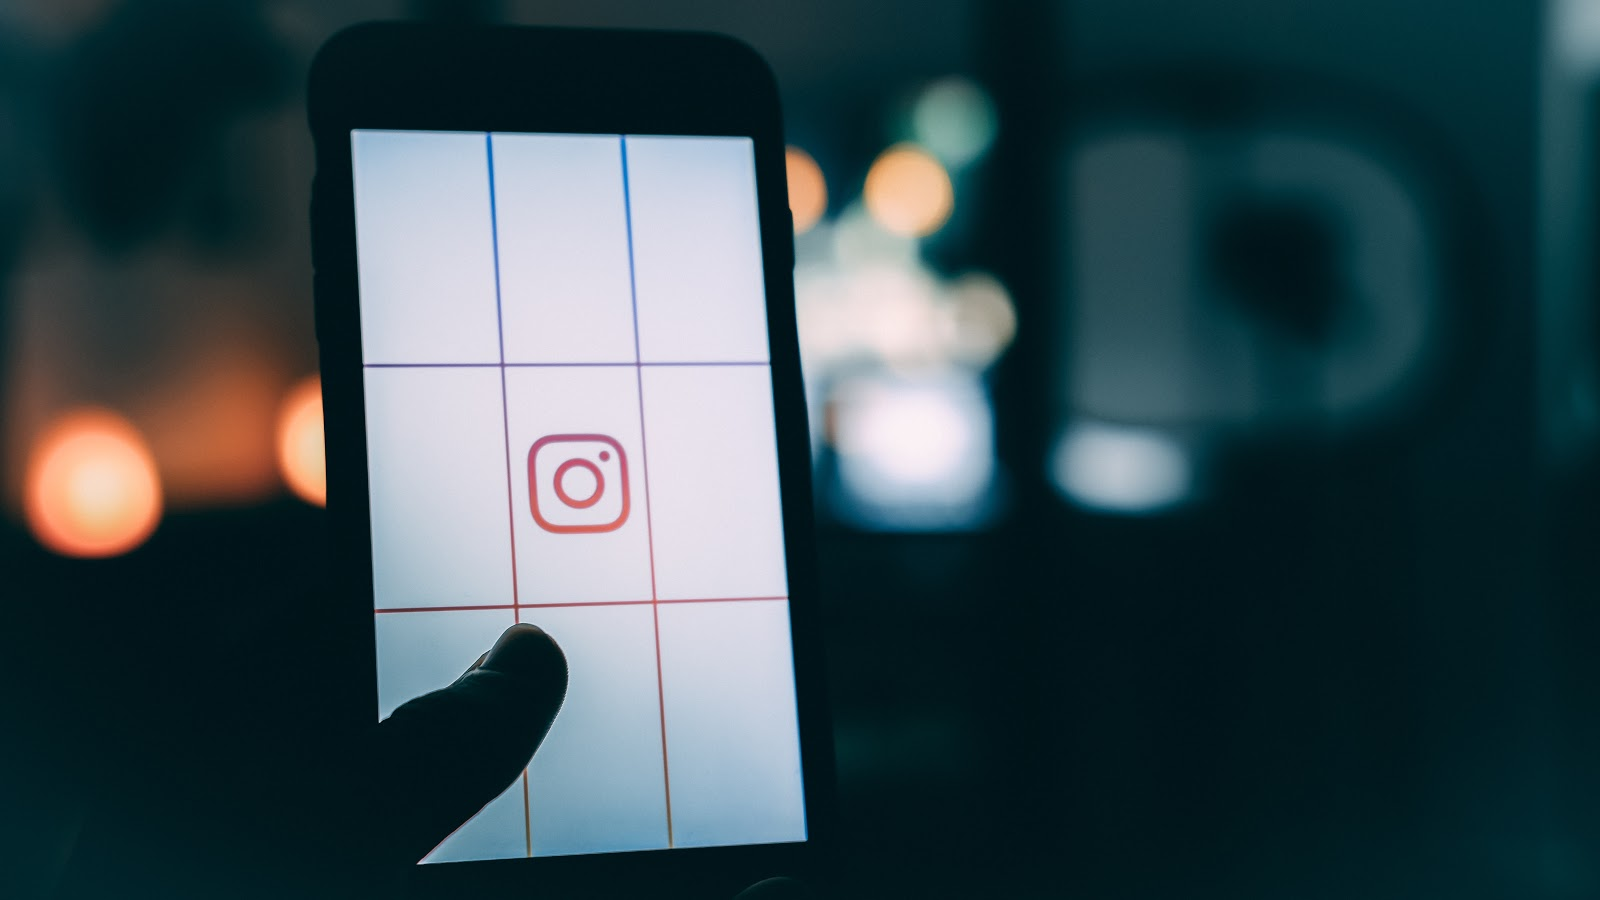 The Top Social Media Trends to Drive Follower Engagement in 2020 and Beyond